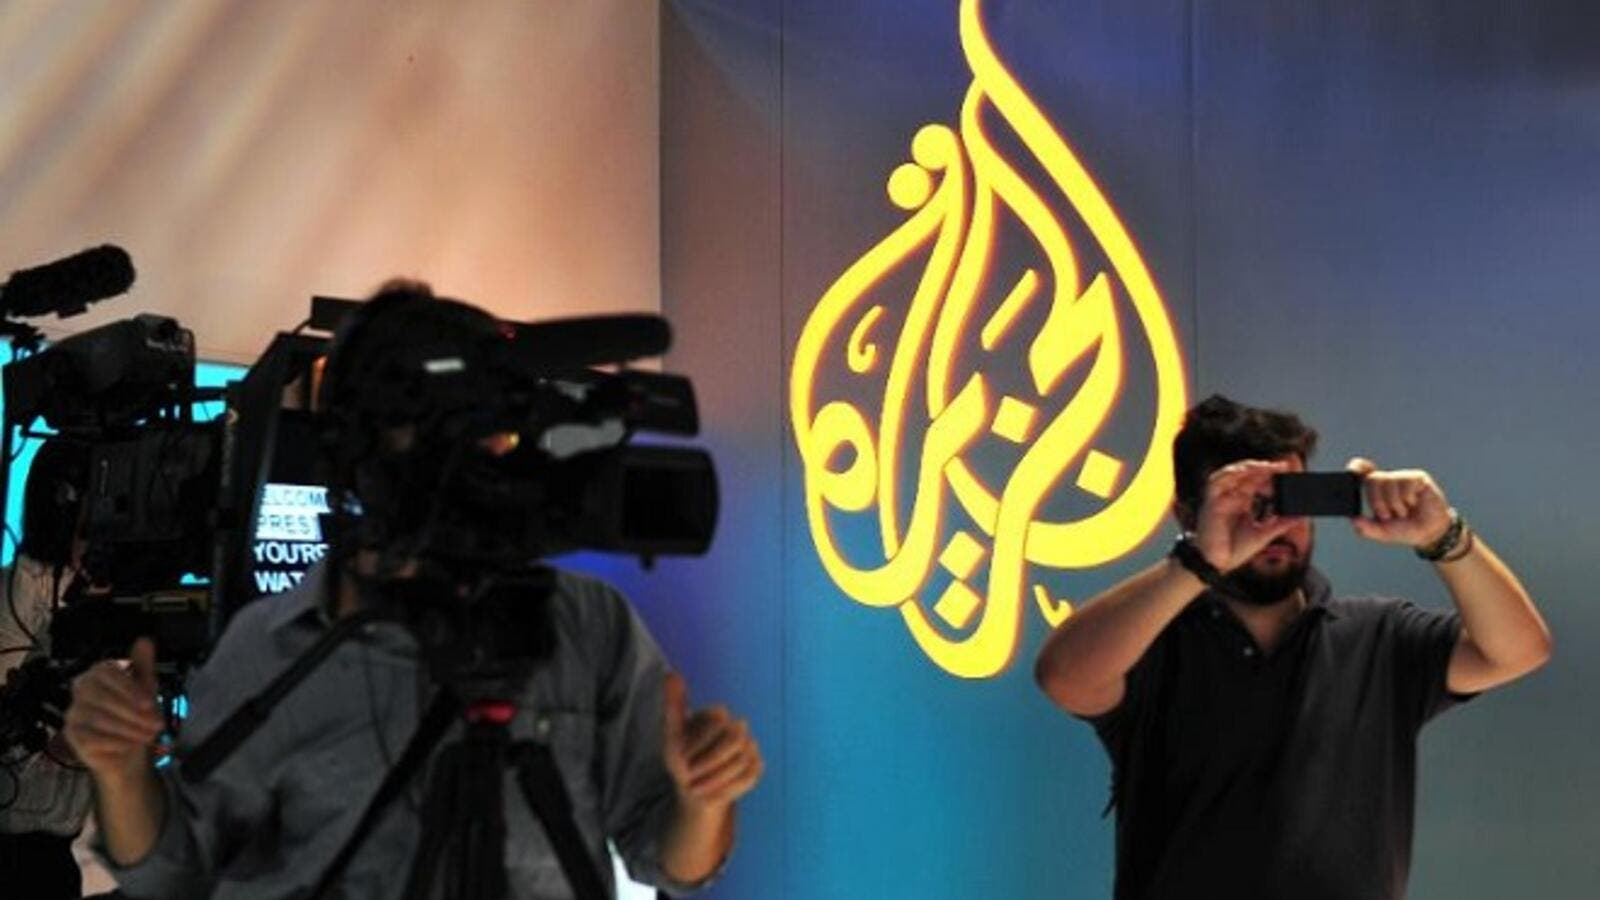 Saudi Arabia issued a ban against watching the Al Jazeera TV channels in restaurants, hotels and other tourist outlets. (AFP)